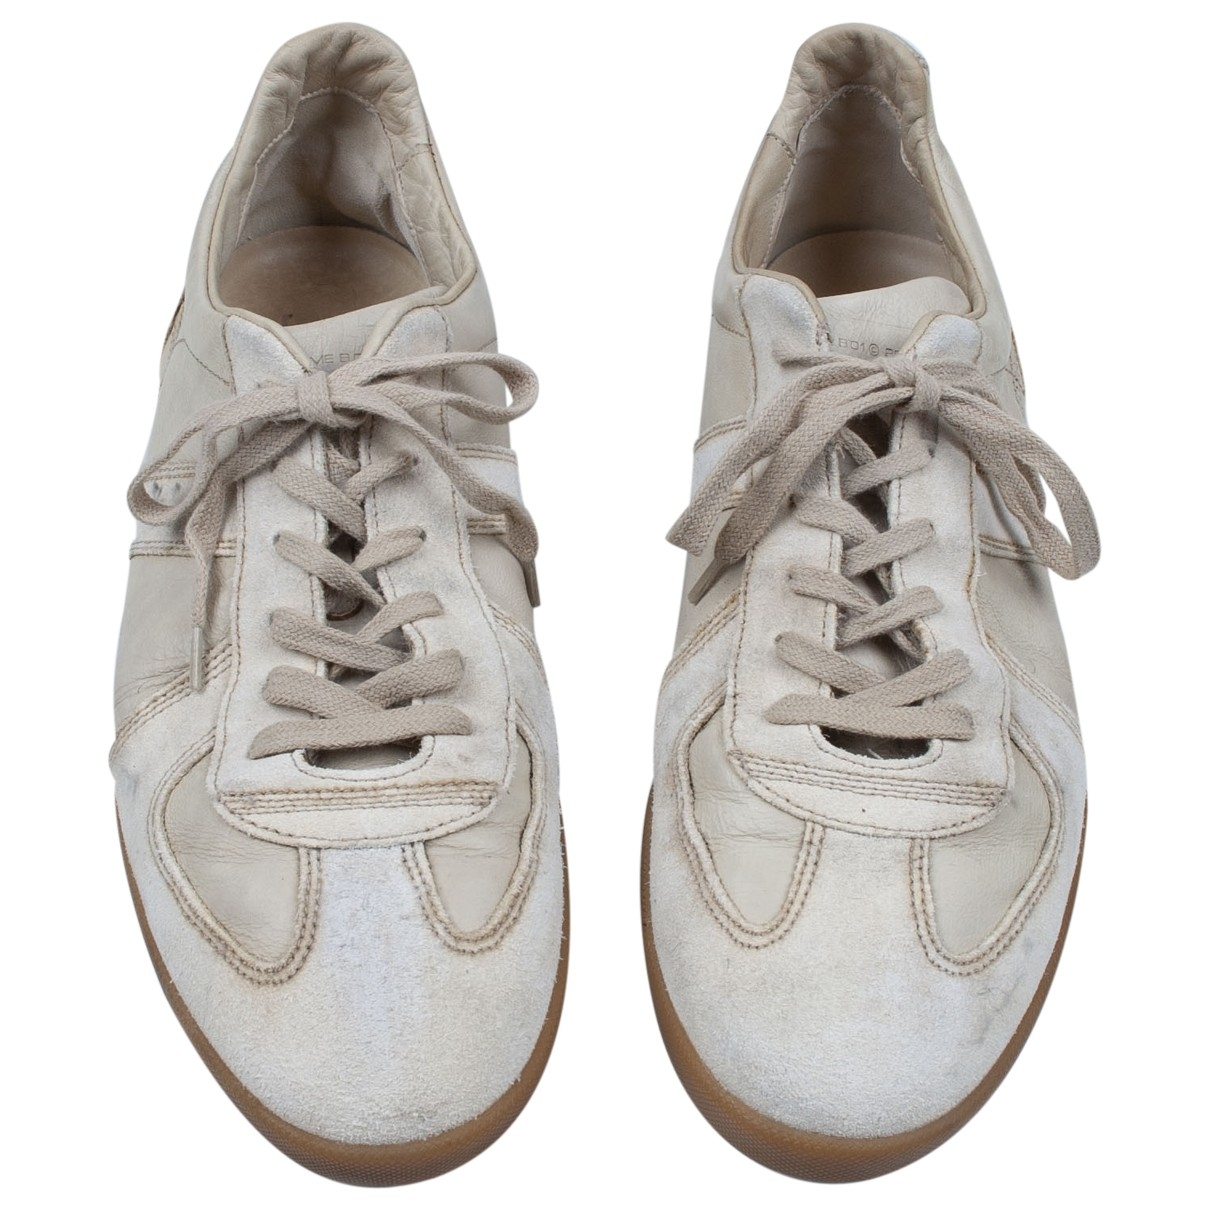 Dior Homme B01 Sneakers in  Weiss Leder